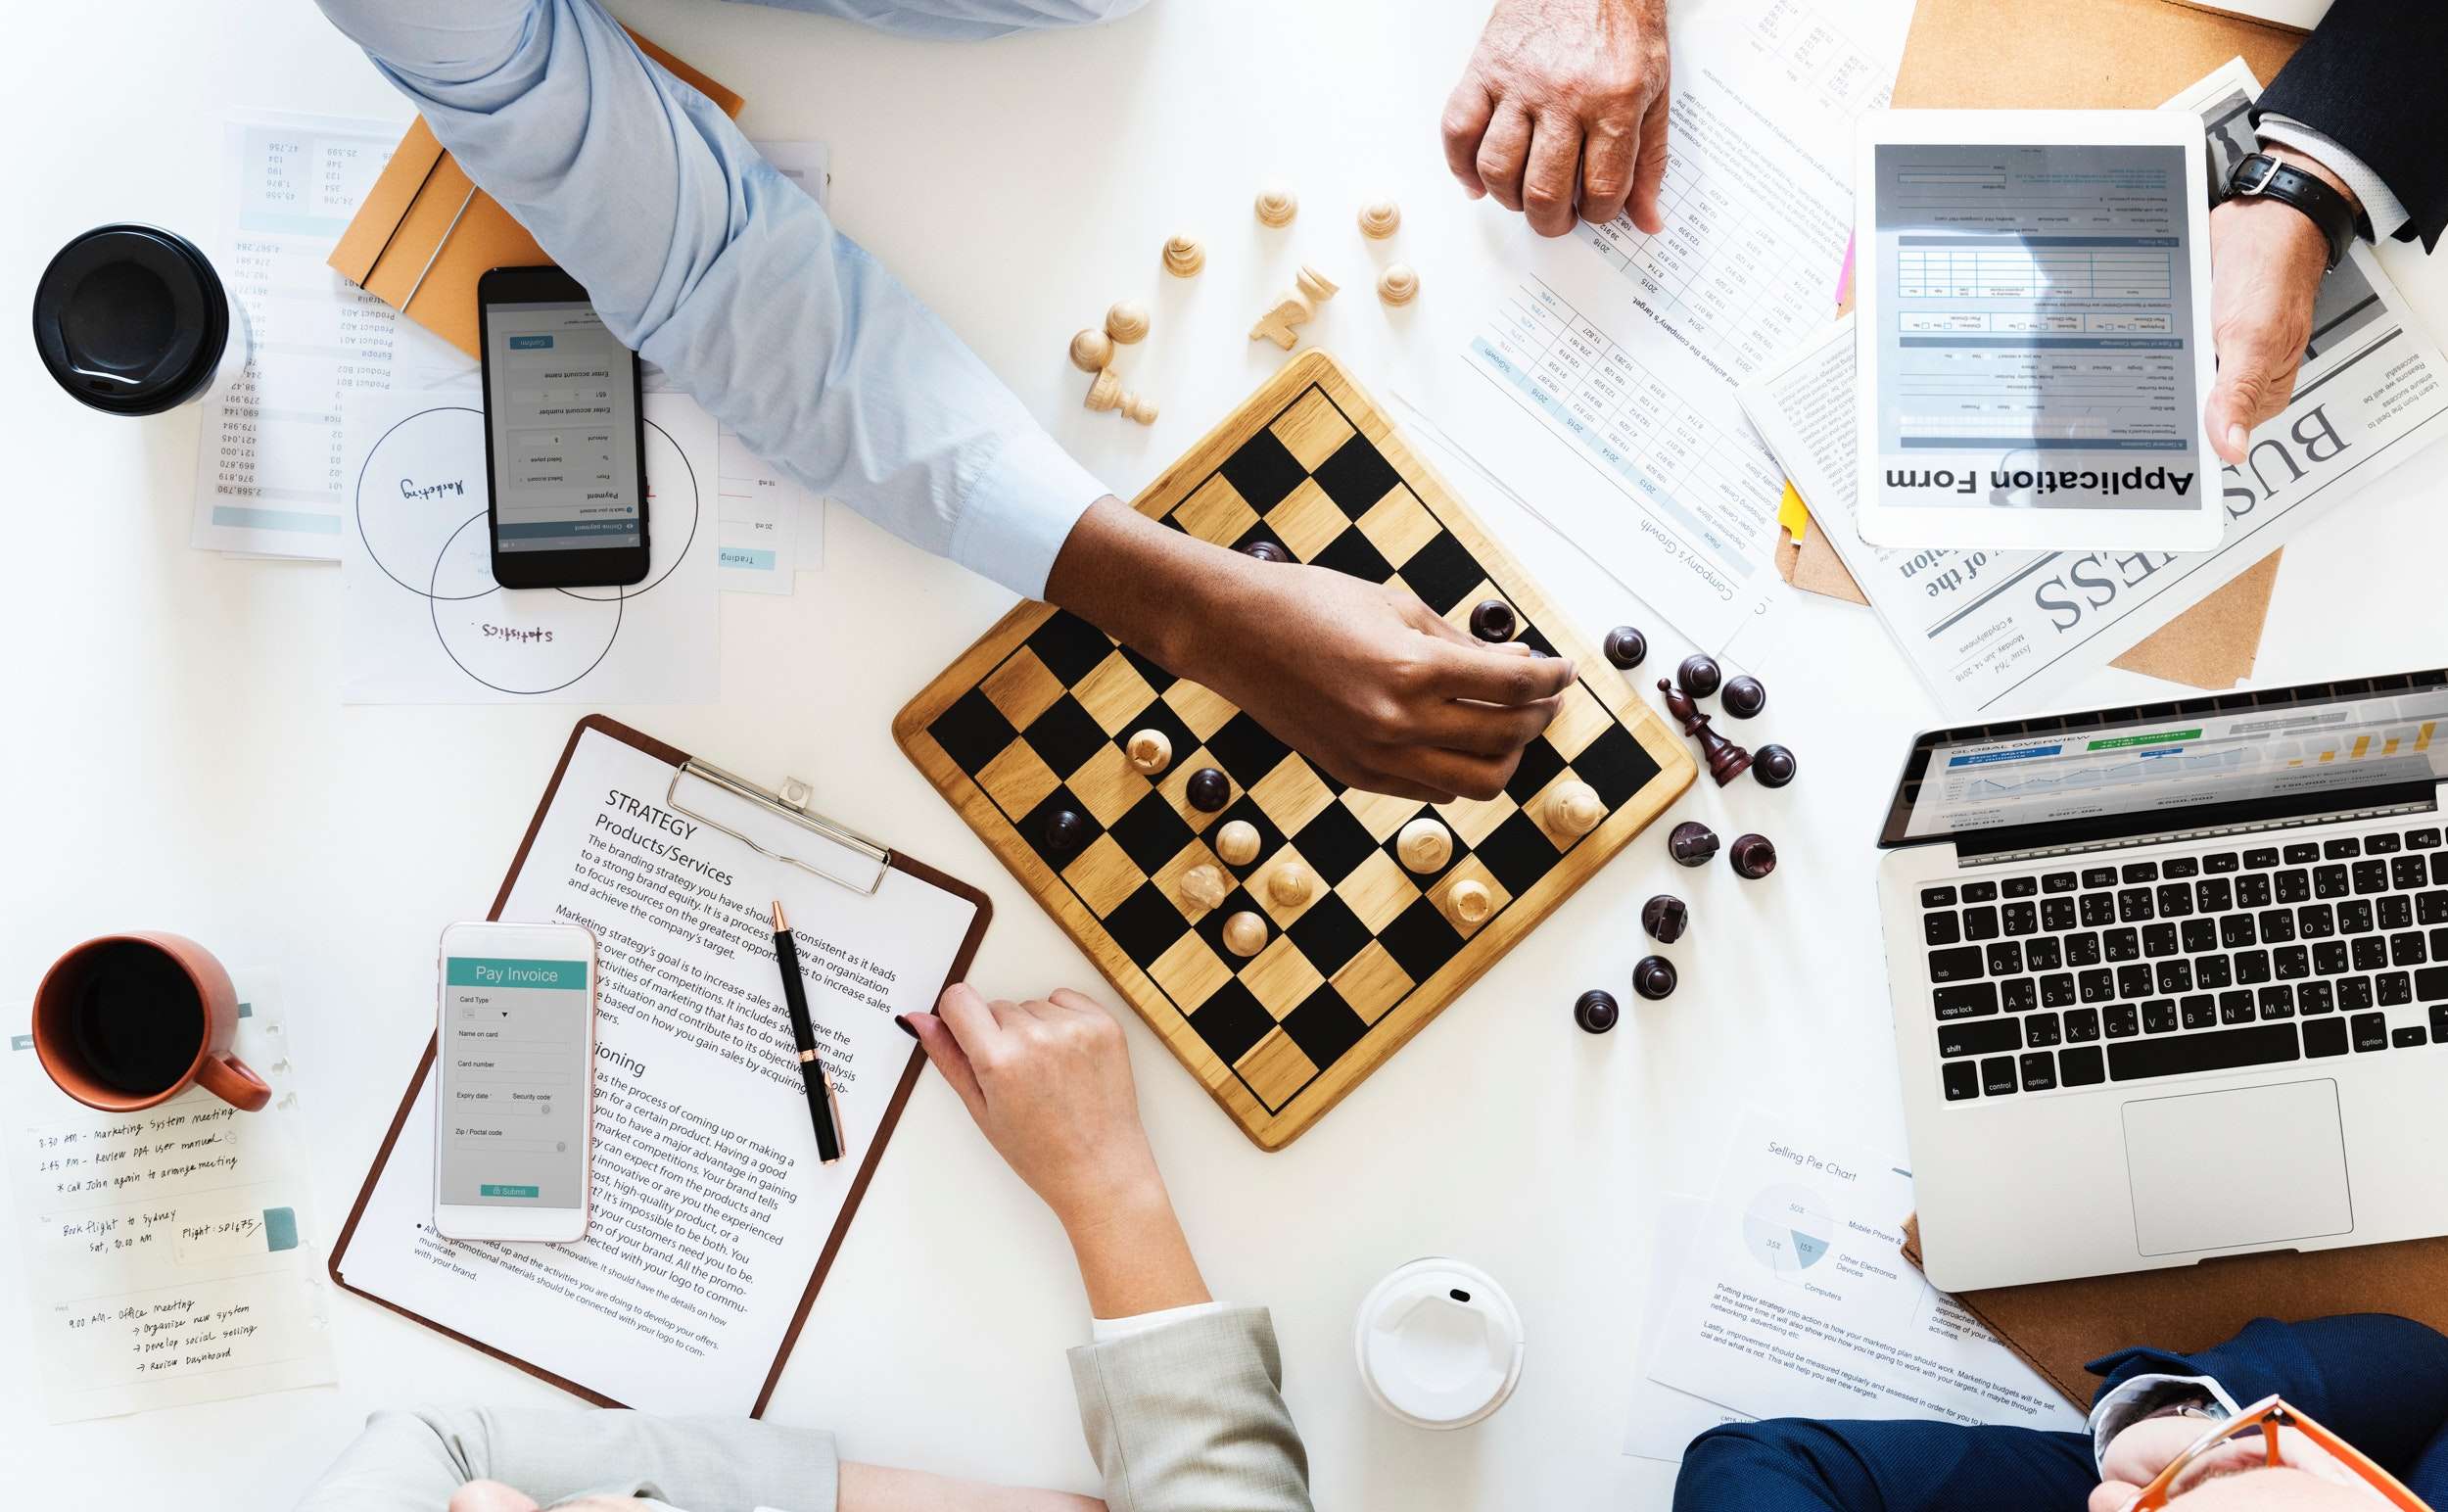 Let's talk and strategize your next move! -